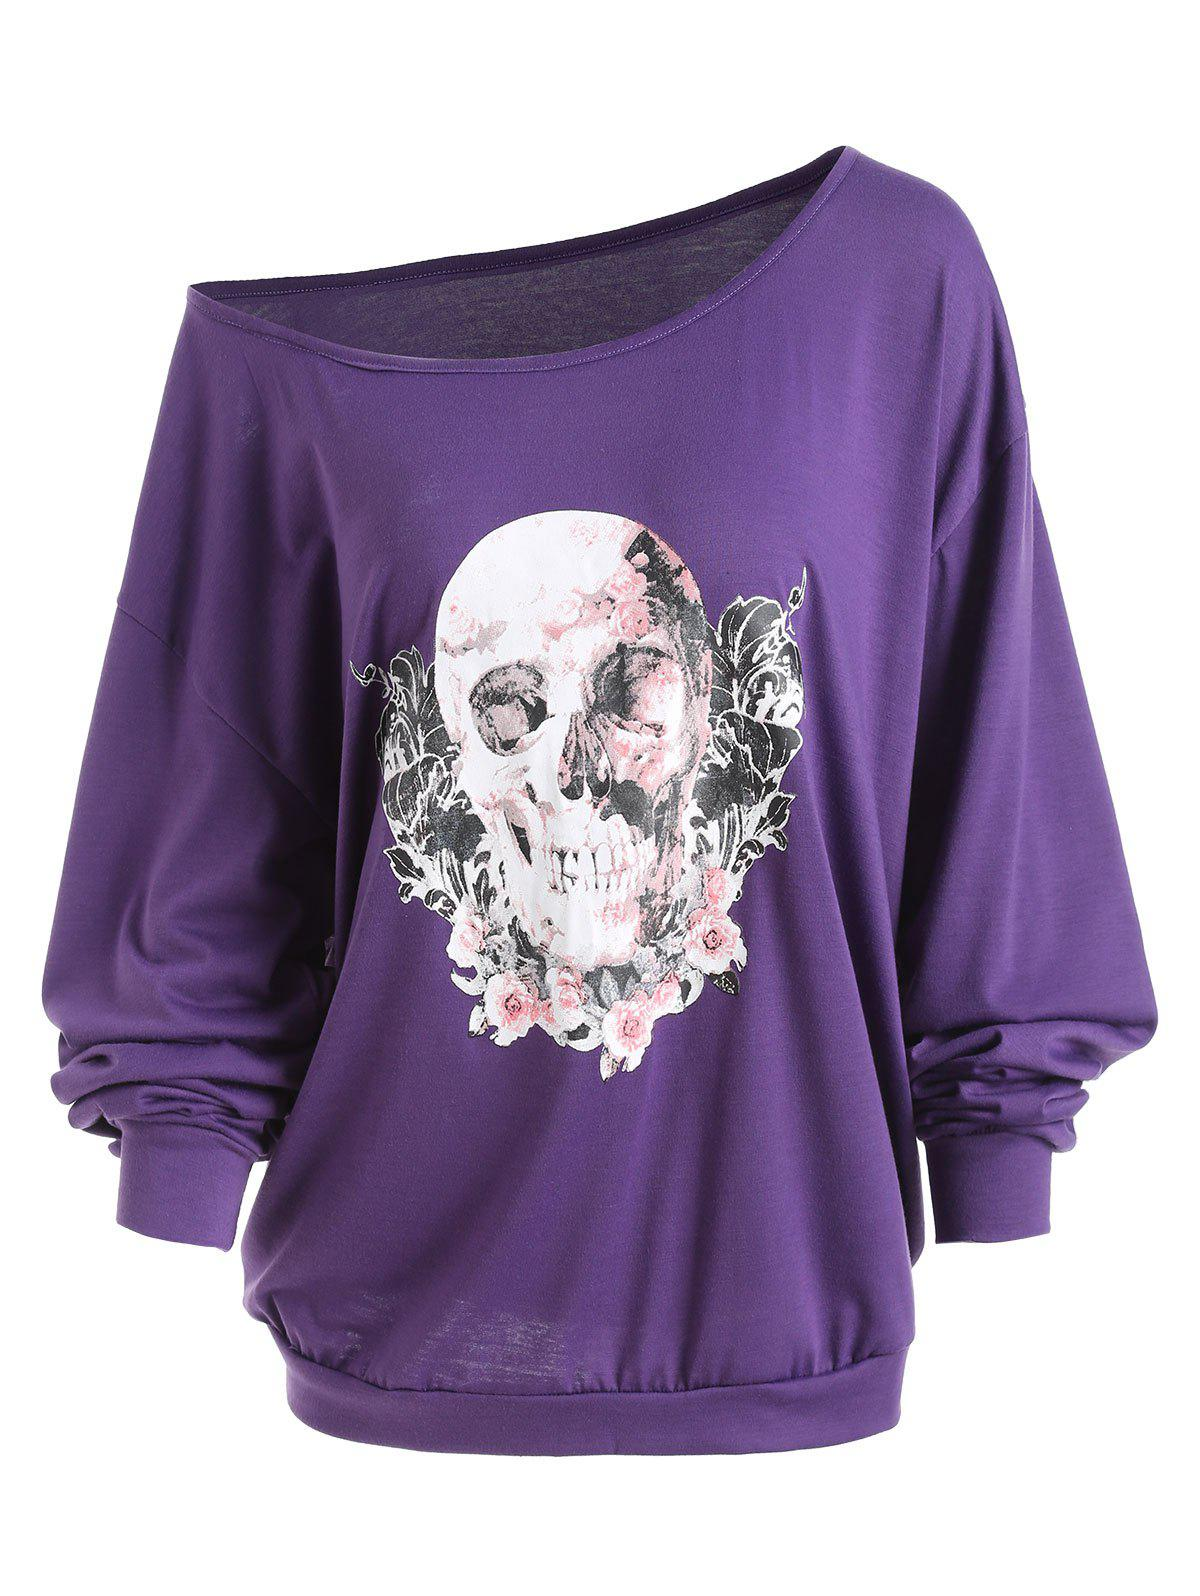 Plus Size Skew Neck Halloween Skull Rose  TeeWOMEN<br><br>Size: 5XL; Color: PURPLE; Material: Cotton Blends,Polyester; Shirt Length: Long; Sleeve Length: Full; Collar: Skew Collar; Style: Fashion; Season: Fall,Spring,Winter; Embellishment: 3D Print; Pattern Type: Skulls; Weight: 0.3200kg; Package Contents: 1 x Tee;